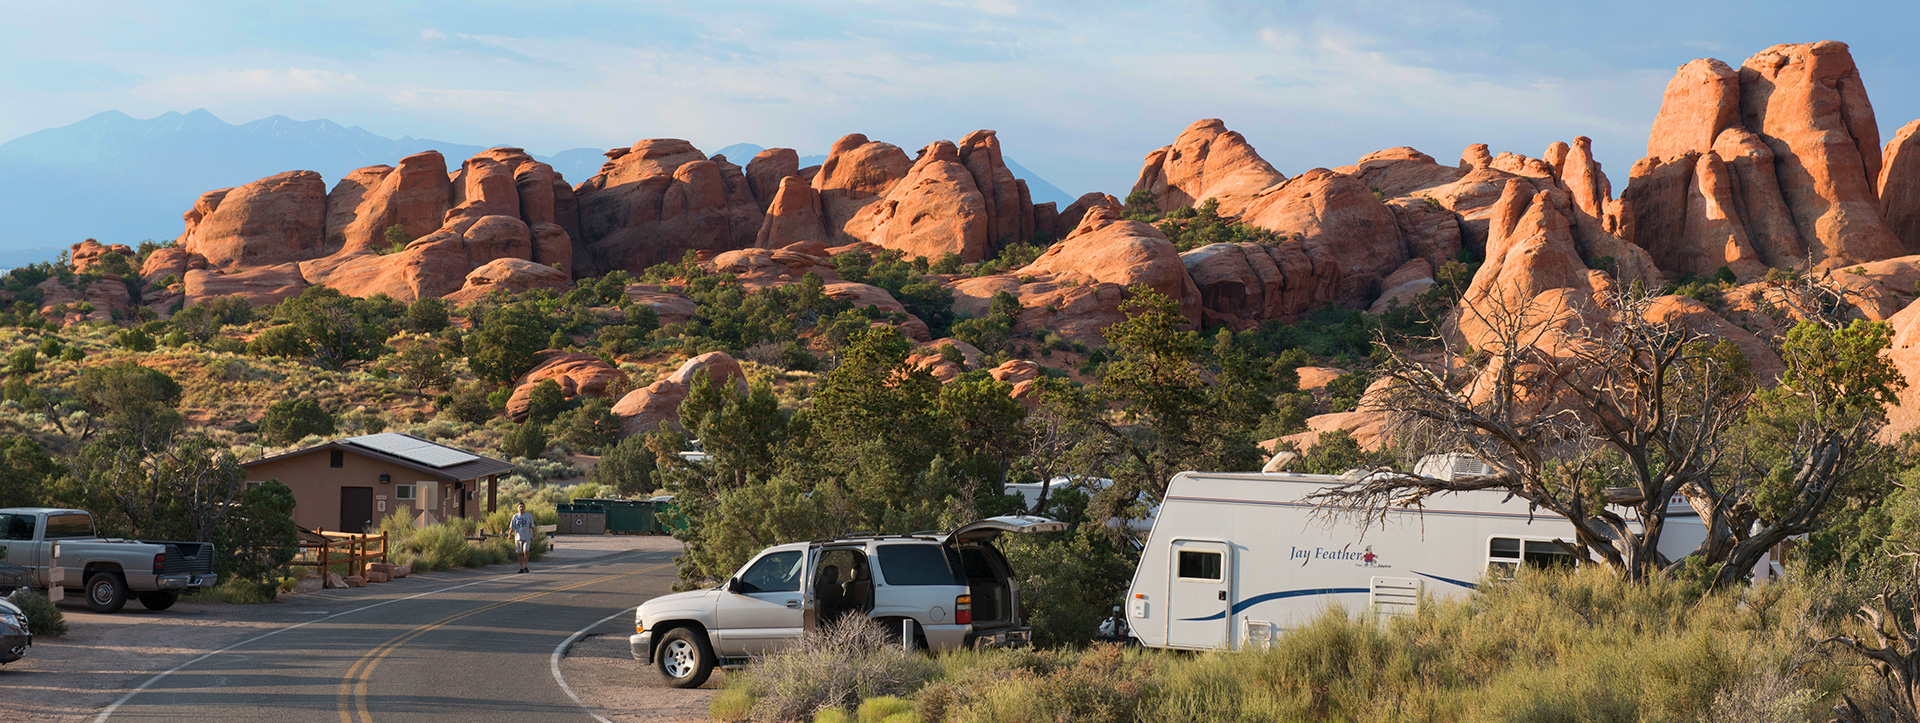 A Complete Guide To Campgrounds In And Around Moab Utah